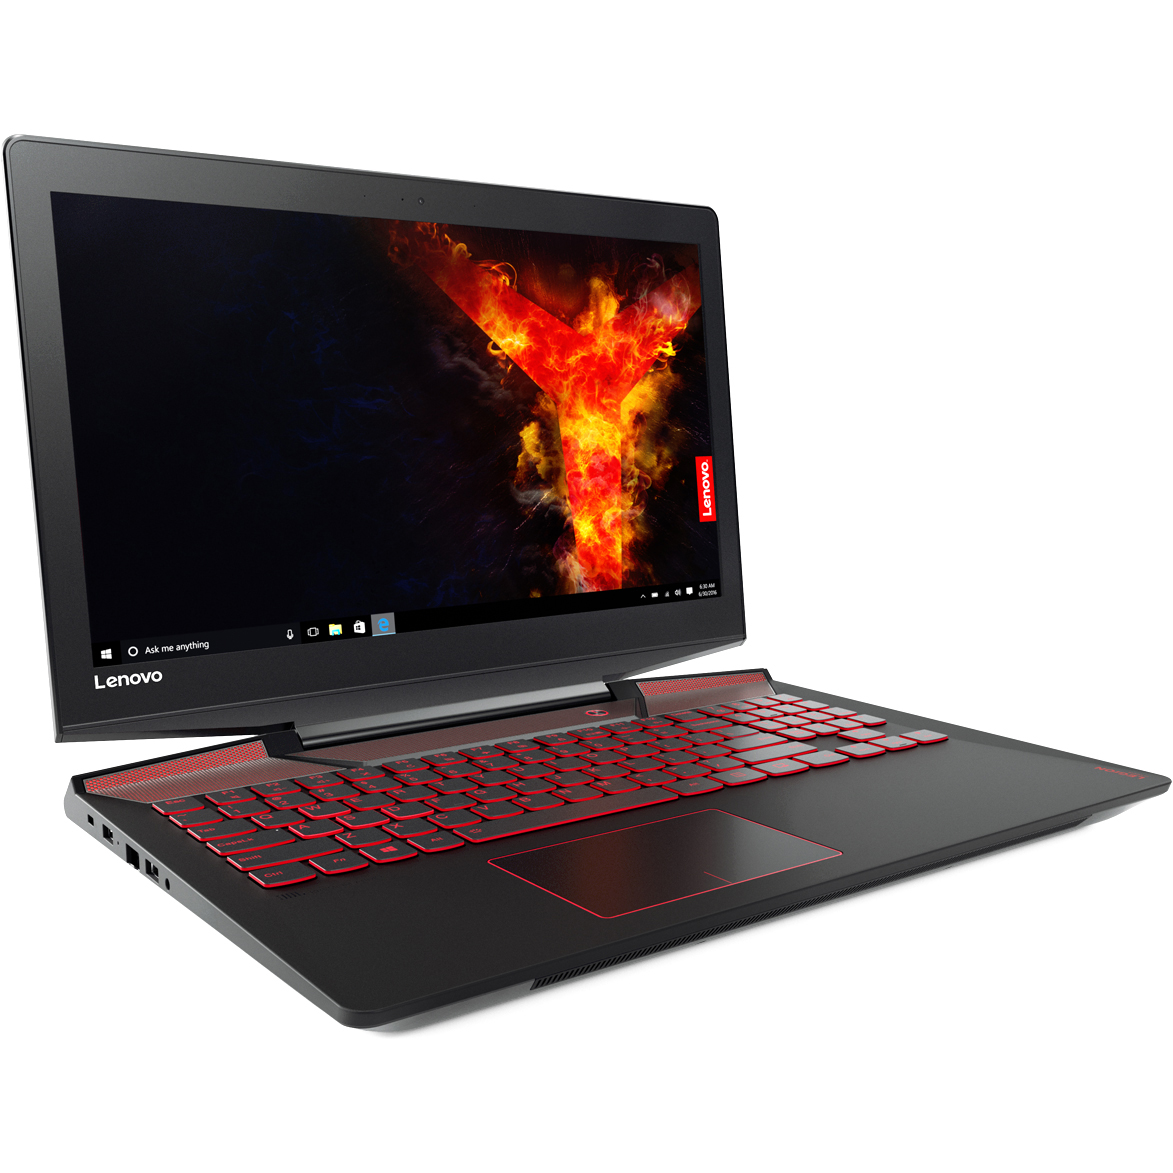 "Lenovo Legion Y720-15IKB 15.6"" Intel Core i7-7700HQ 16GB DDR4 1TB HDD - 256GB SSD - Windows 10 Home 3840 x 2160 IPS Black Notebook"